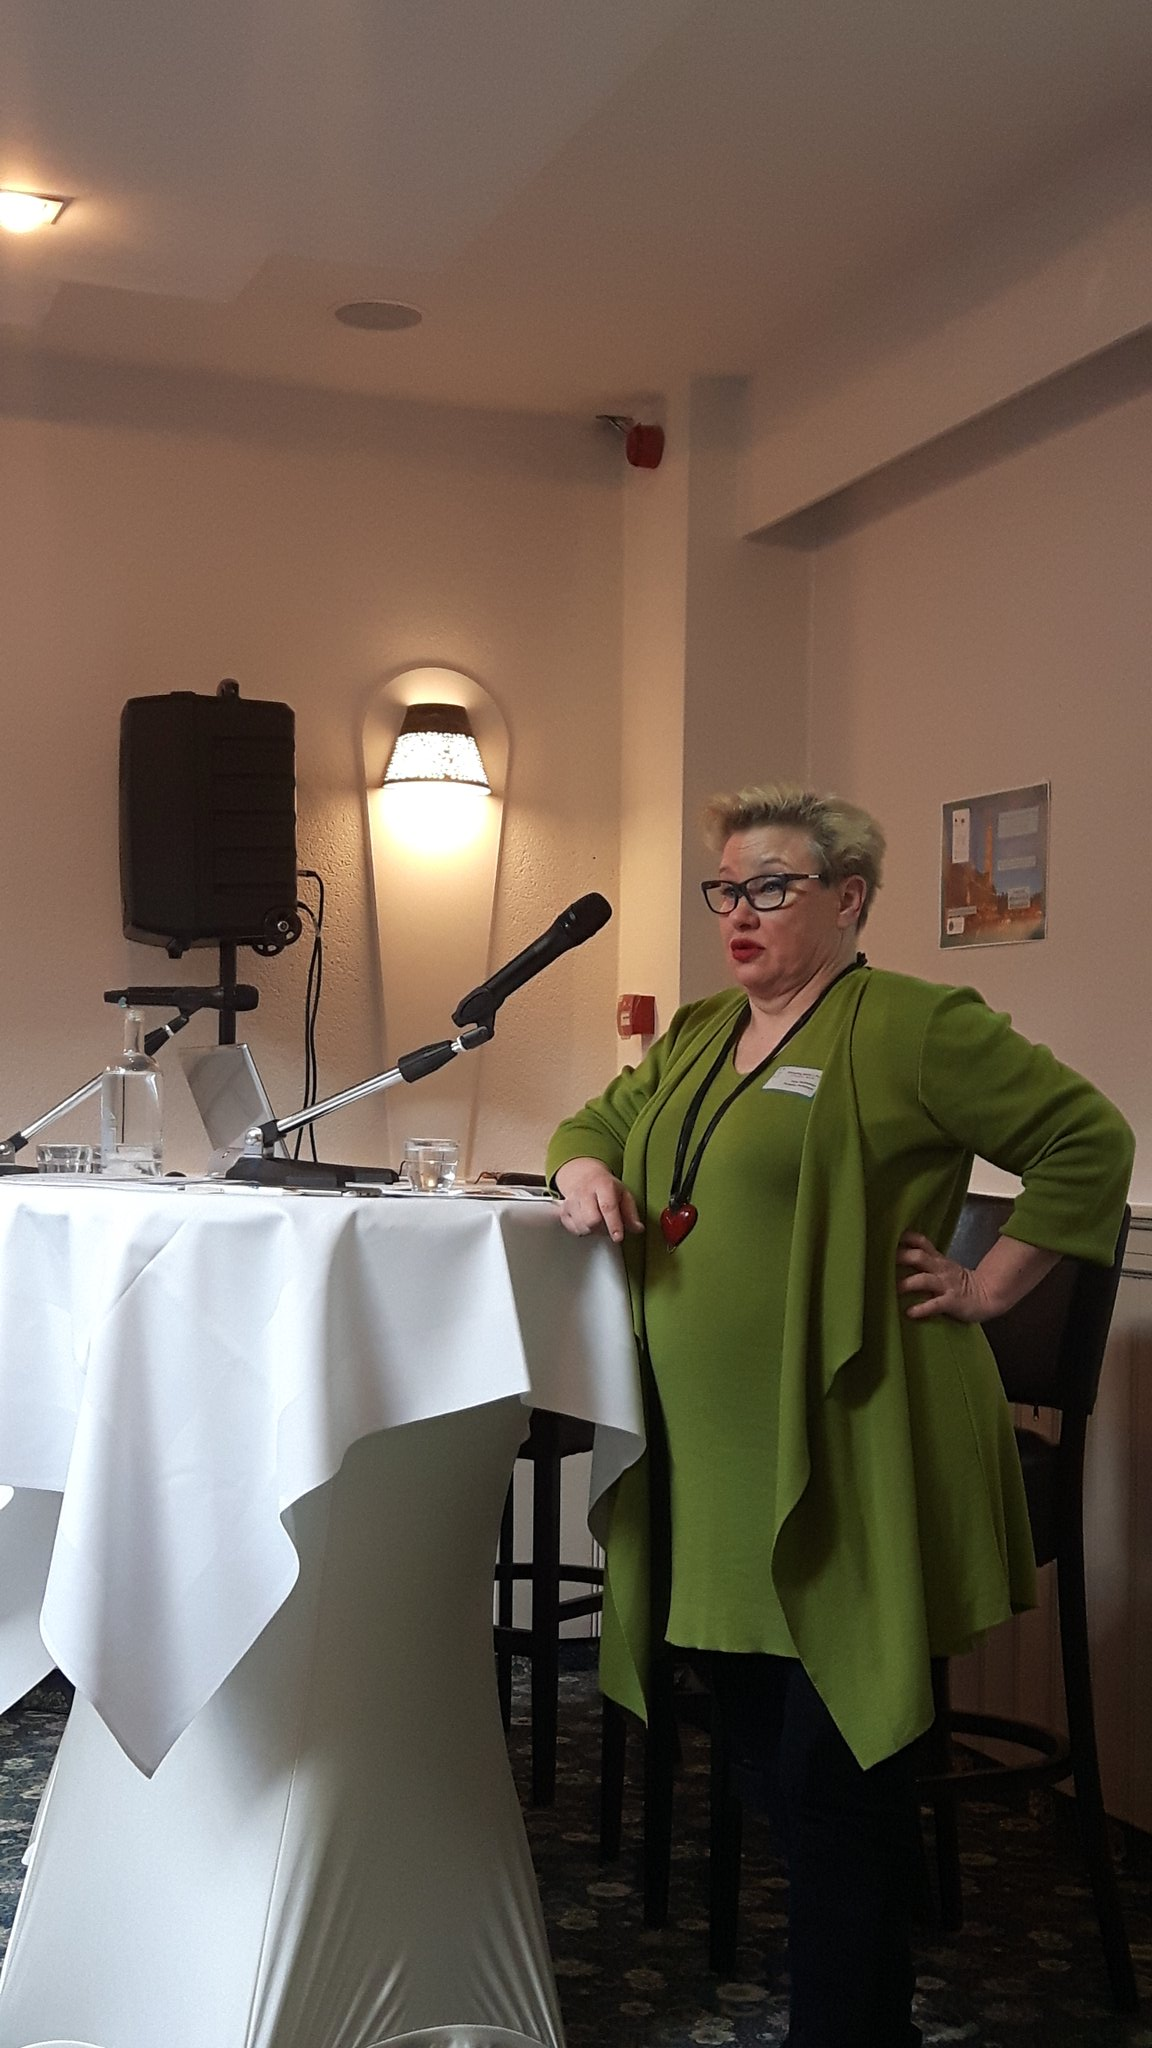 #mep Pietikainen taking the #floor and speaking about the #picnic concept at the Enterprising #womenintech event @WeHubs @EUBIC #WEDay https://t.co/fn421eINX6